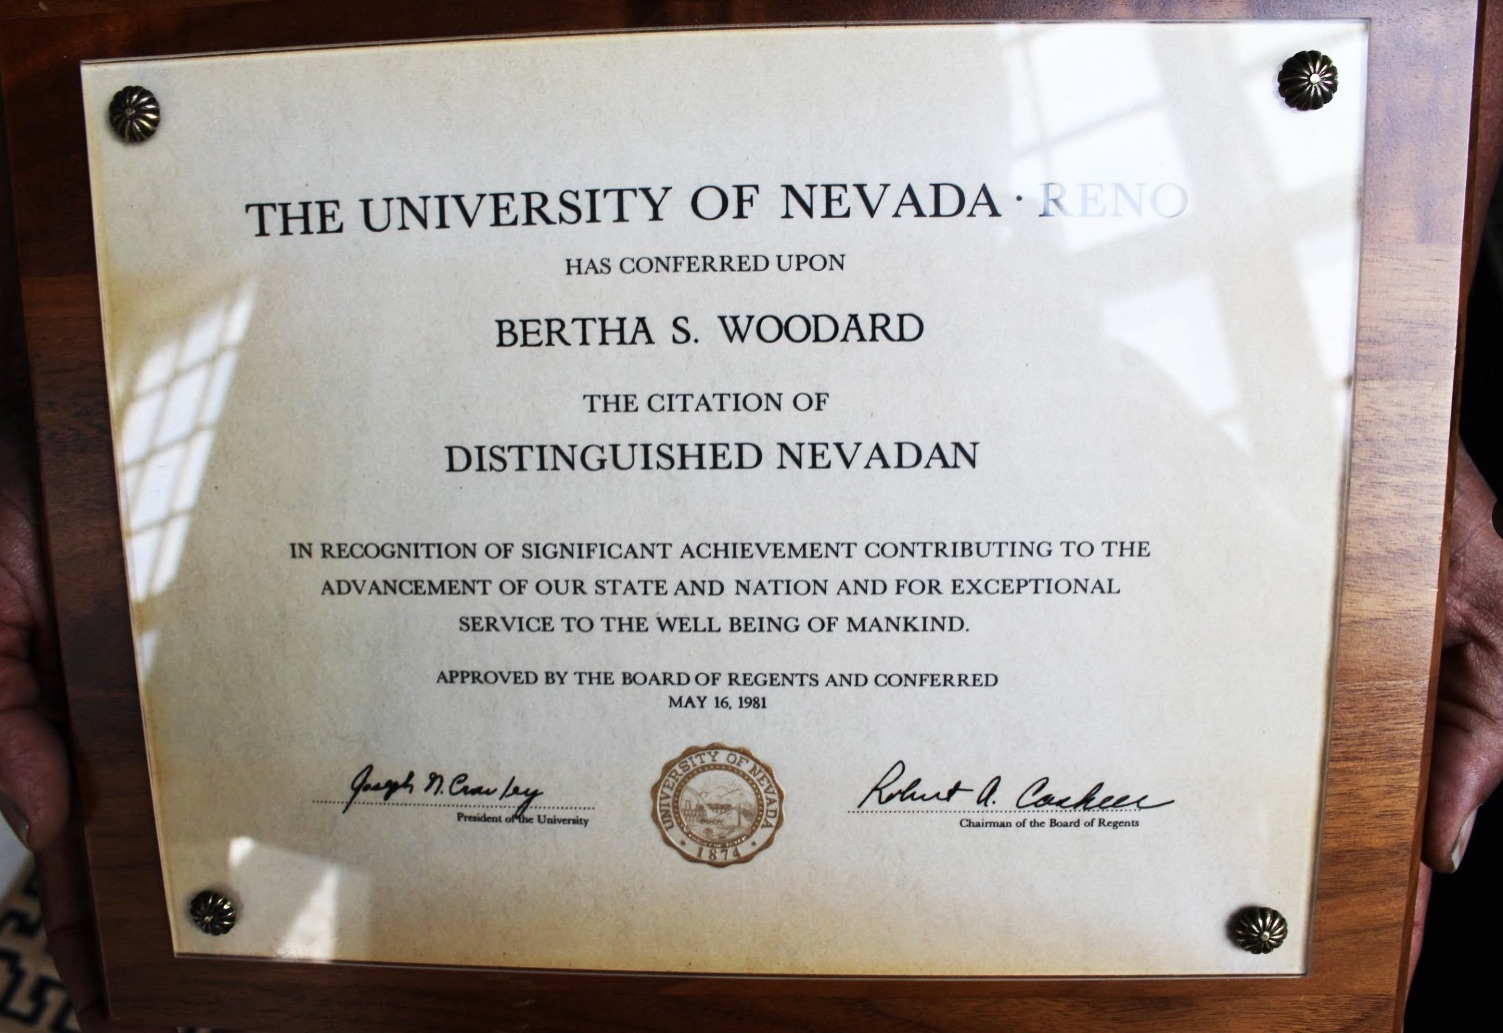 Dalton holds the framed certificate issued in May 16, 1981 by the University of Nevada, Reno and approved by the Board of Regents recognizing civil rights activist Bertha S. Woodard as a distinguished Nevadan. This is just one of her plaques and awards that is in Dalton's possession.